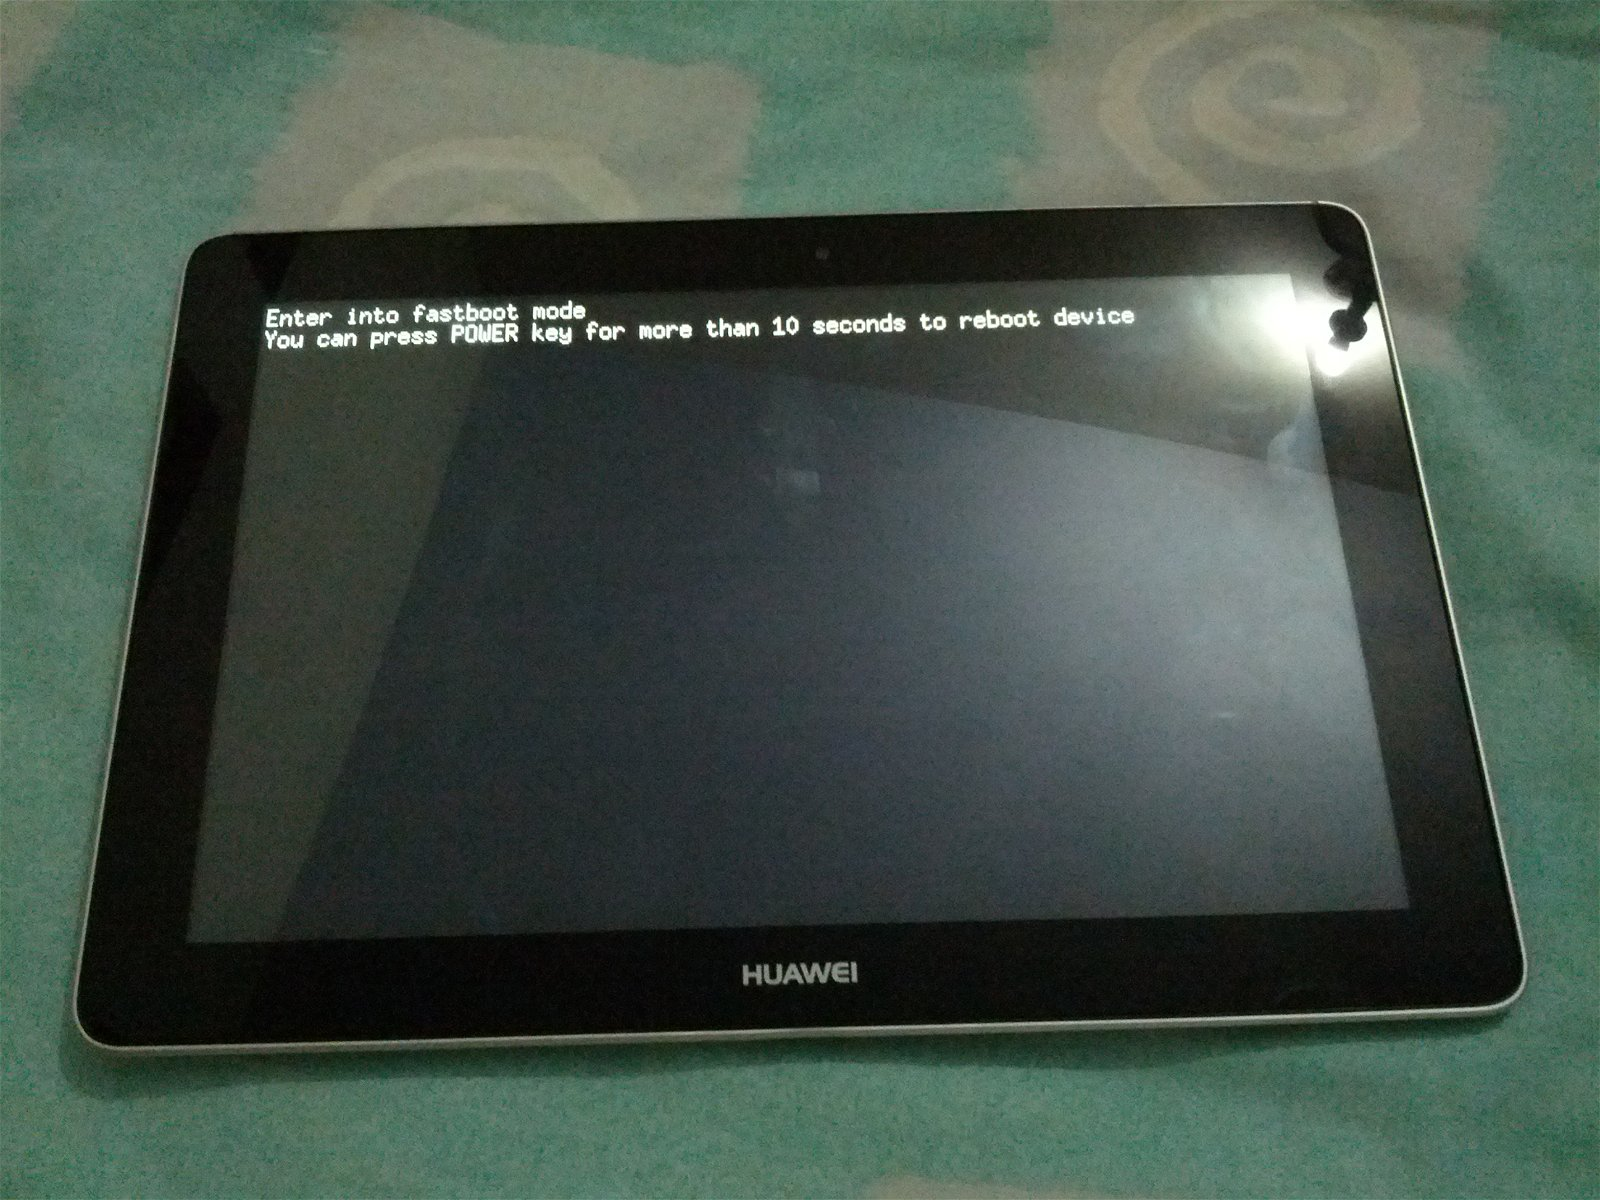 Huawei MediaPad 10 FHD: Fastboot / Bootloader Mode [How To]